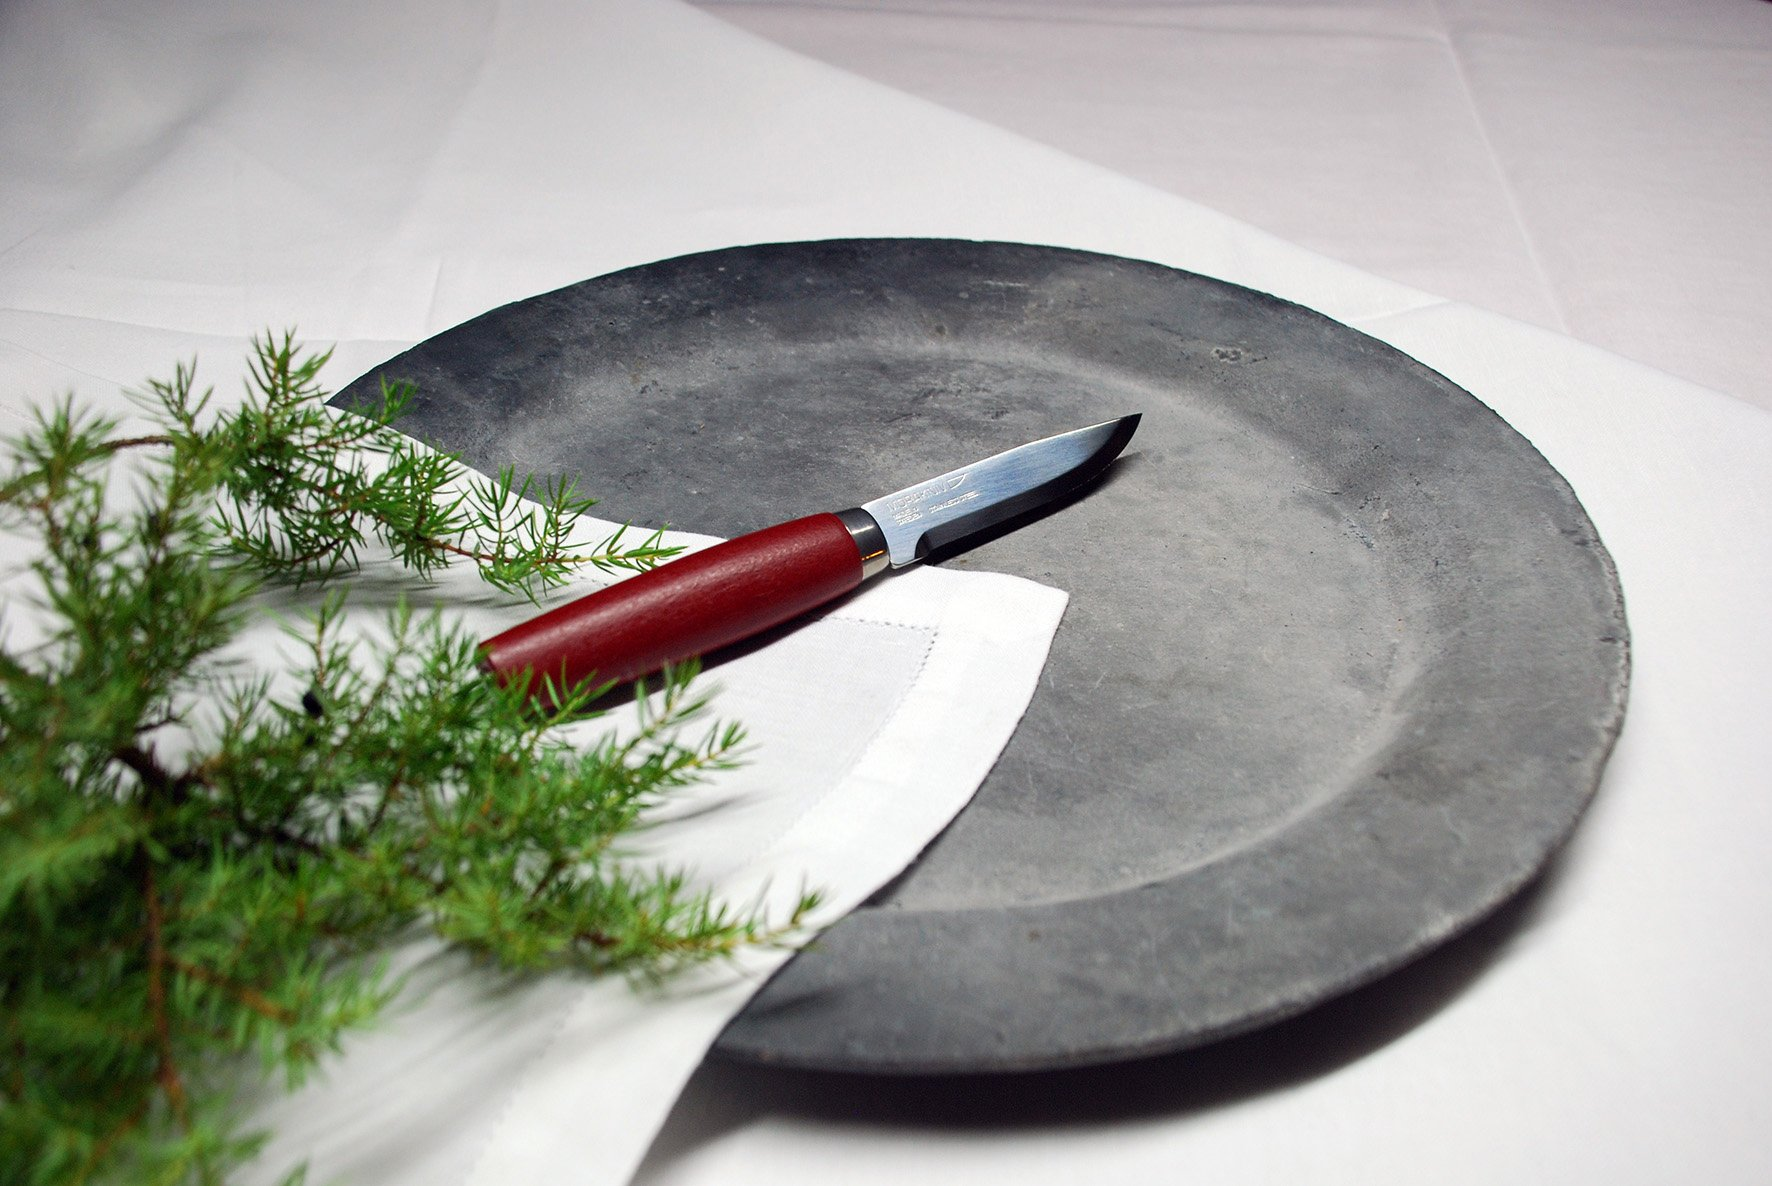 Frosts by Mora of Sweden Classic Steak Knife with 4.2-Inch Stainless Steel Blade and Red Birch Handle (Gift Set of 2) by Frosts by Mora of Sweden (Image #2)